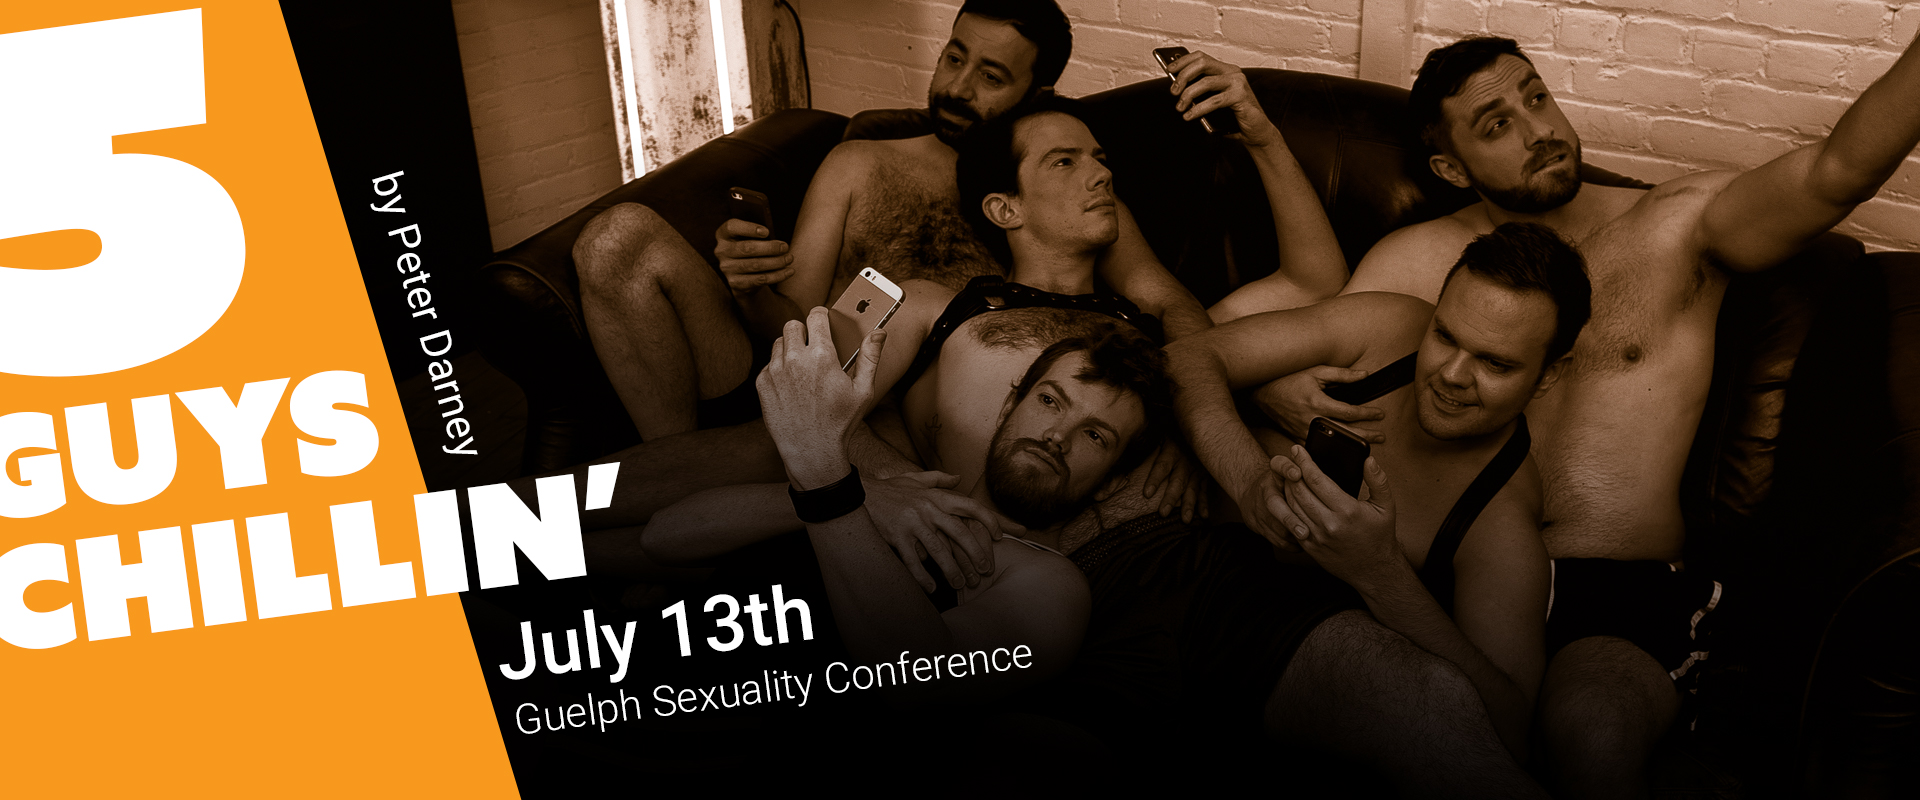 5 guys chillin' cast written by peter Darney at the Guelph Sexuality Conference